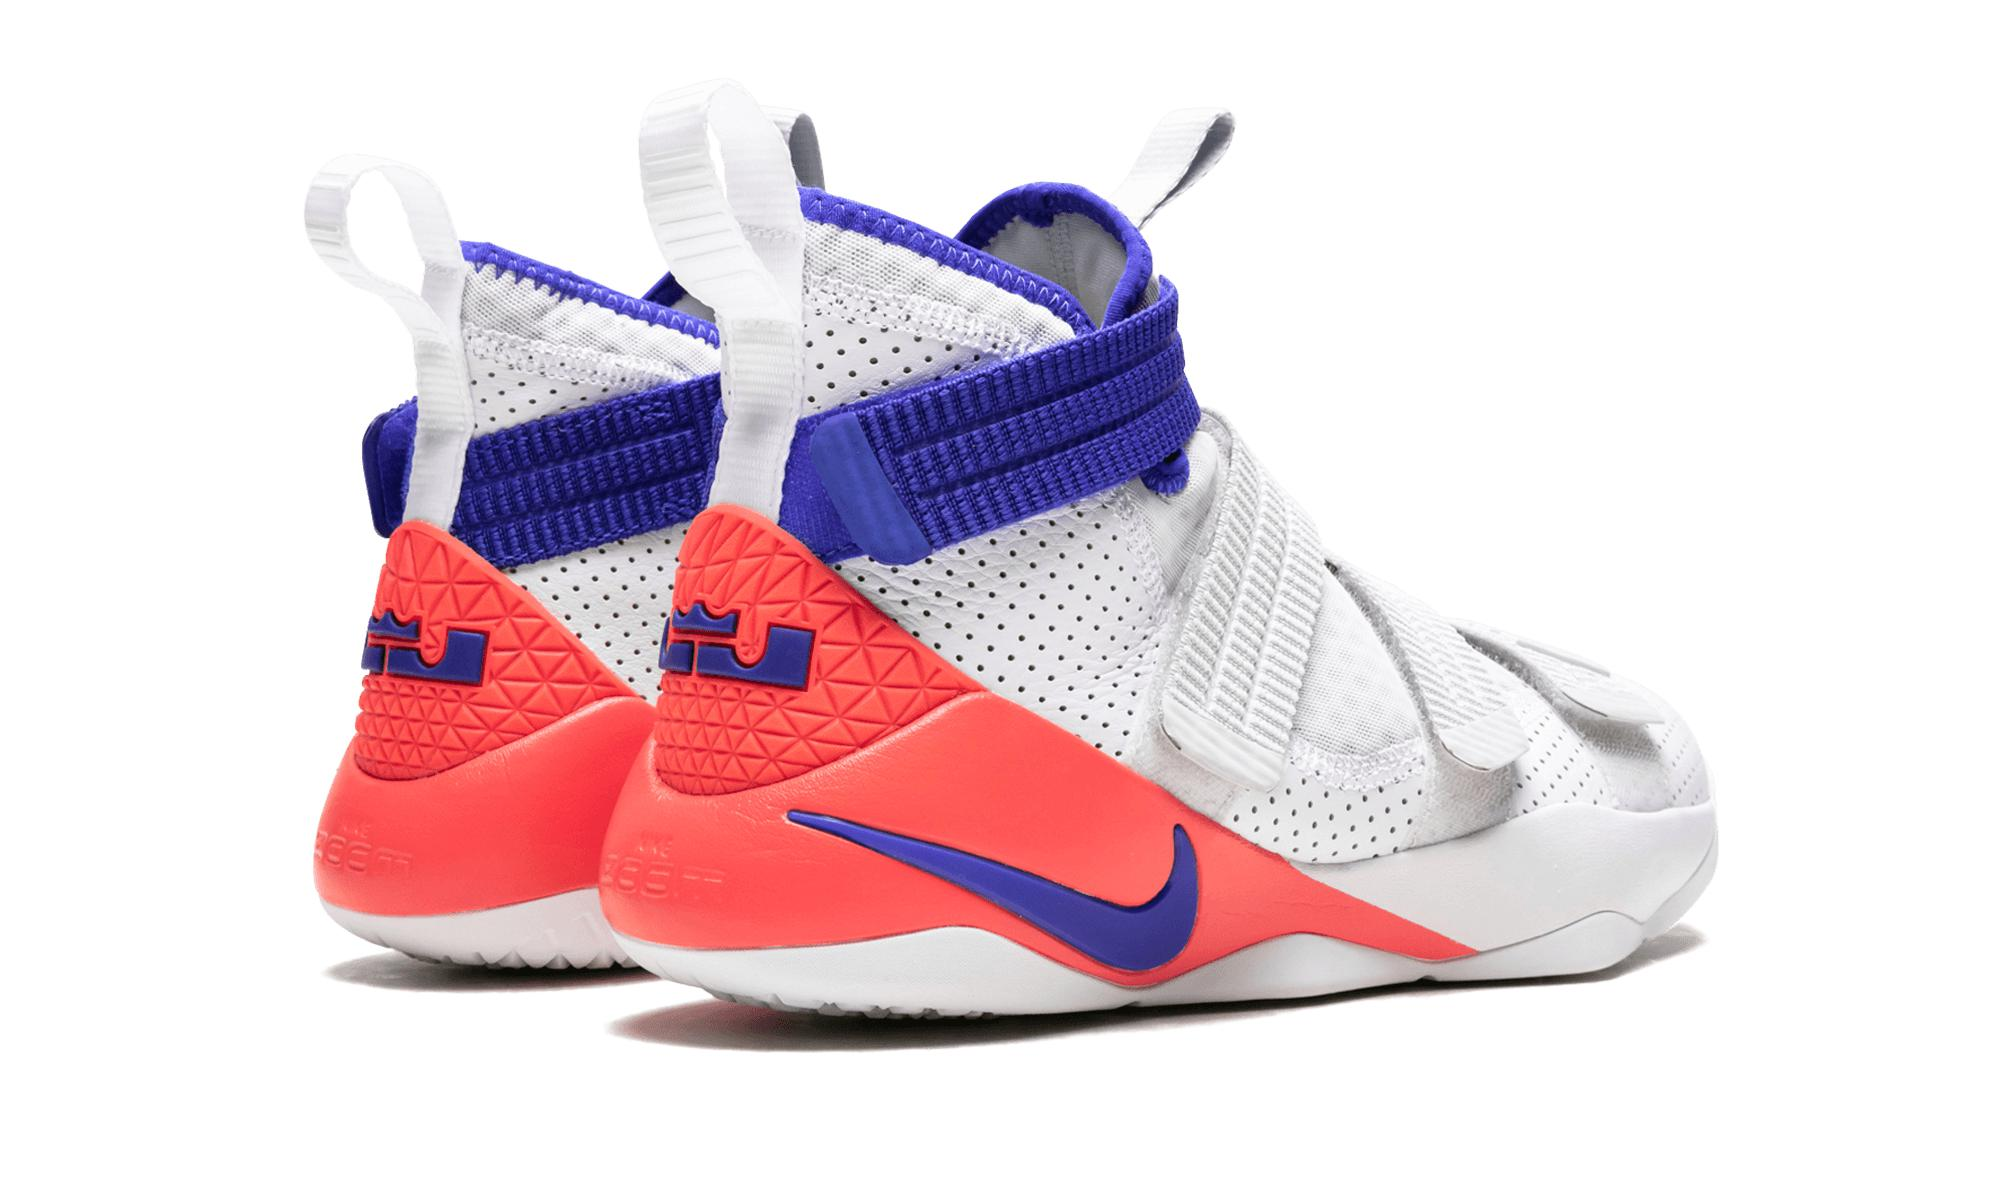 the latest 3ac36 39e06 Lyst - Nike Lebron Soldier 11 Sfg in White for Men